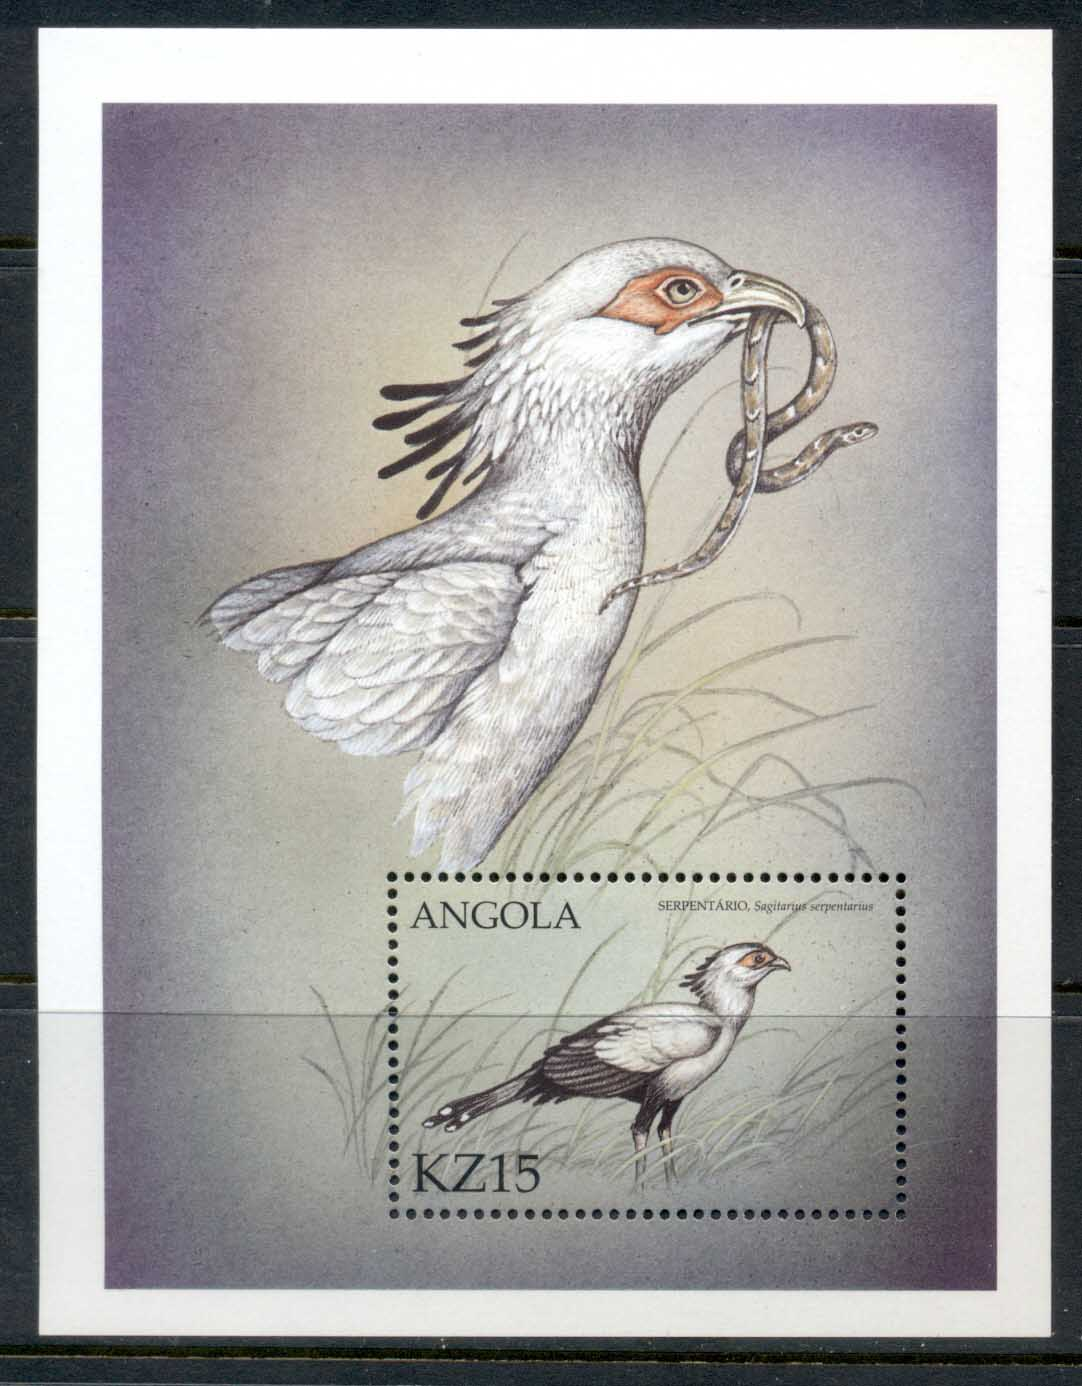 Angola 2000 Birds of Prey MS KZ15 MUH